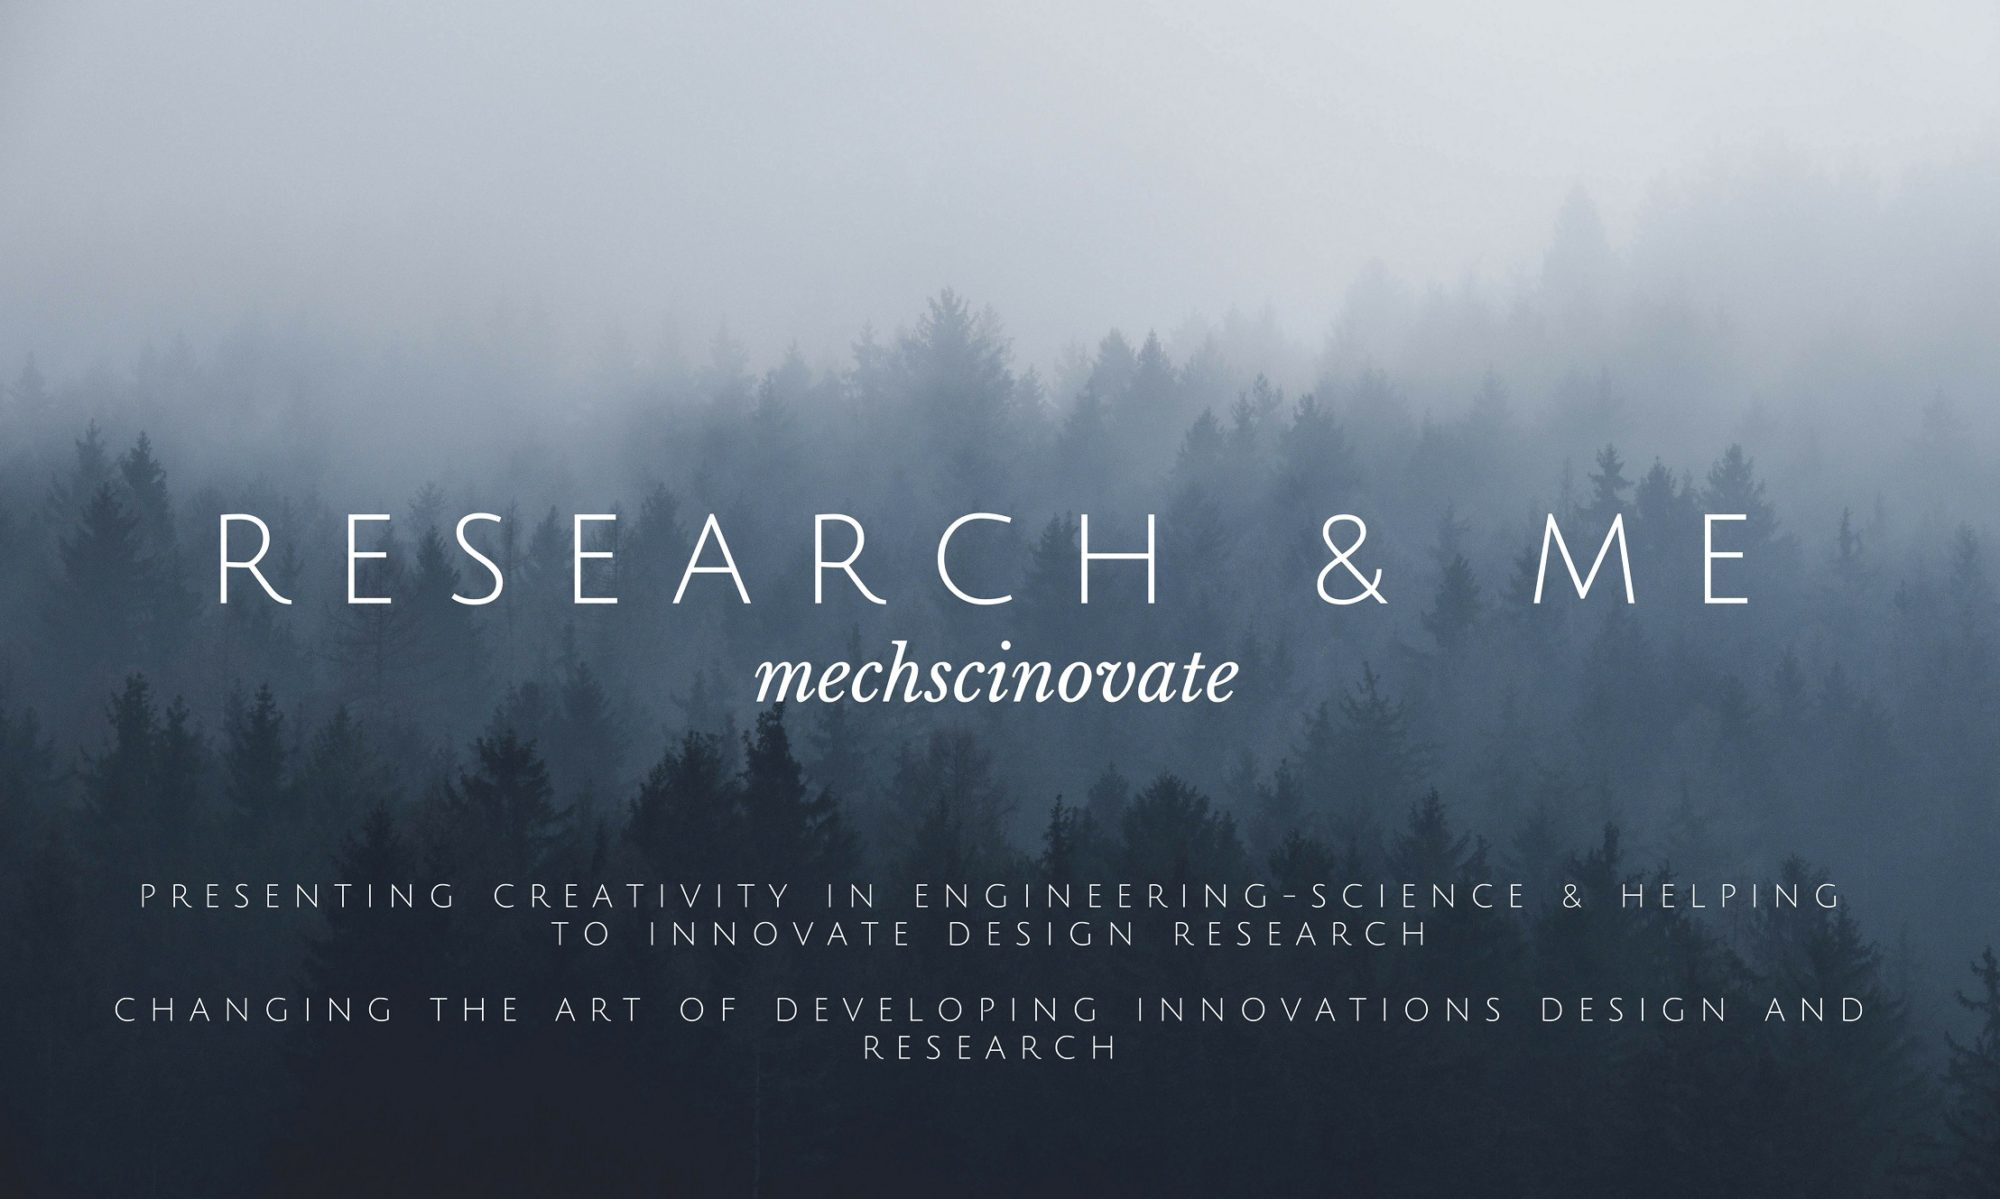 RESEARCH & ME ||mechscinovate||